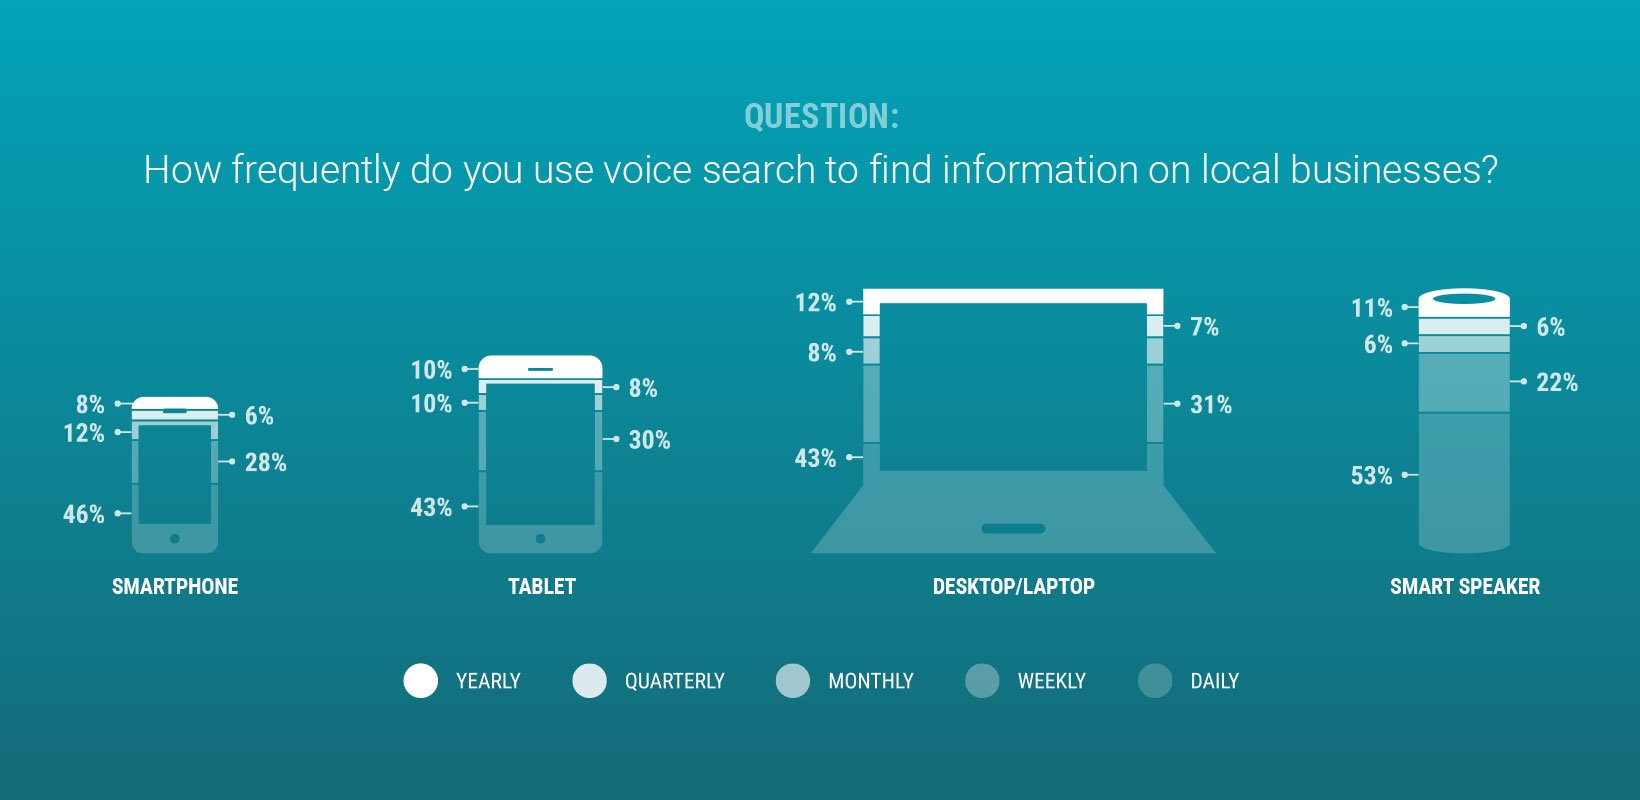 Across devices, people use voice search to find local business info